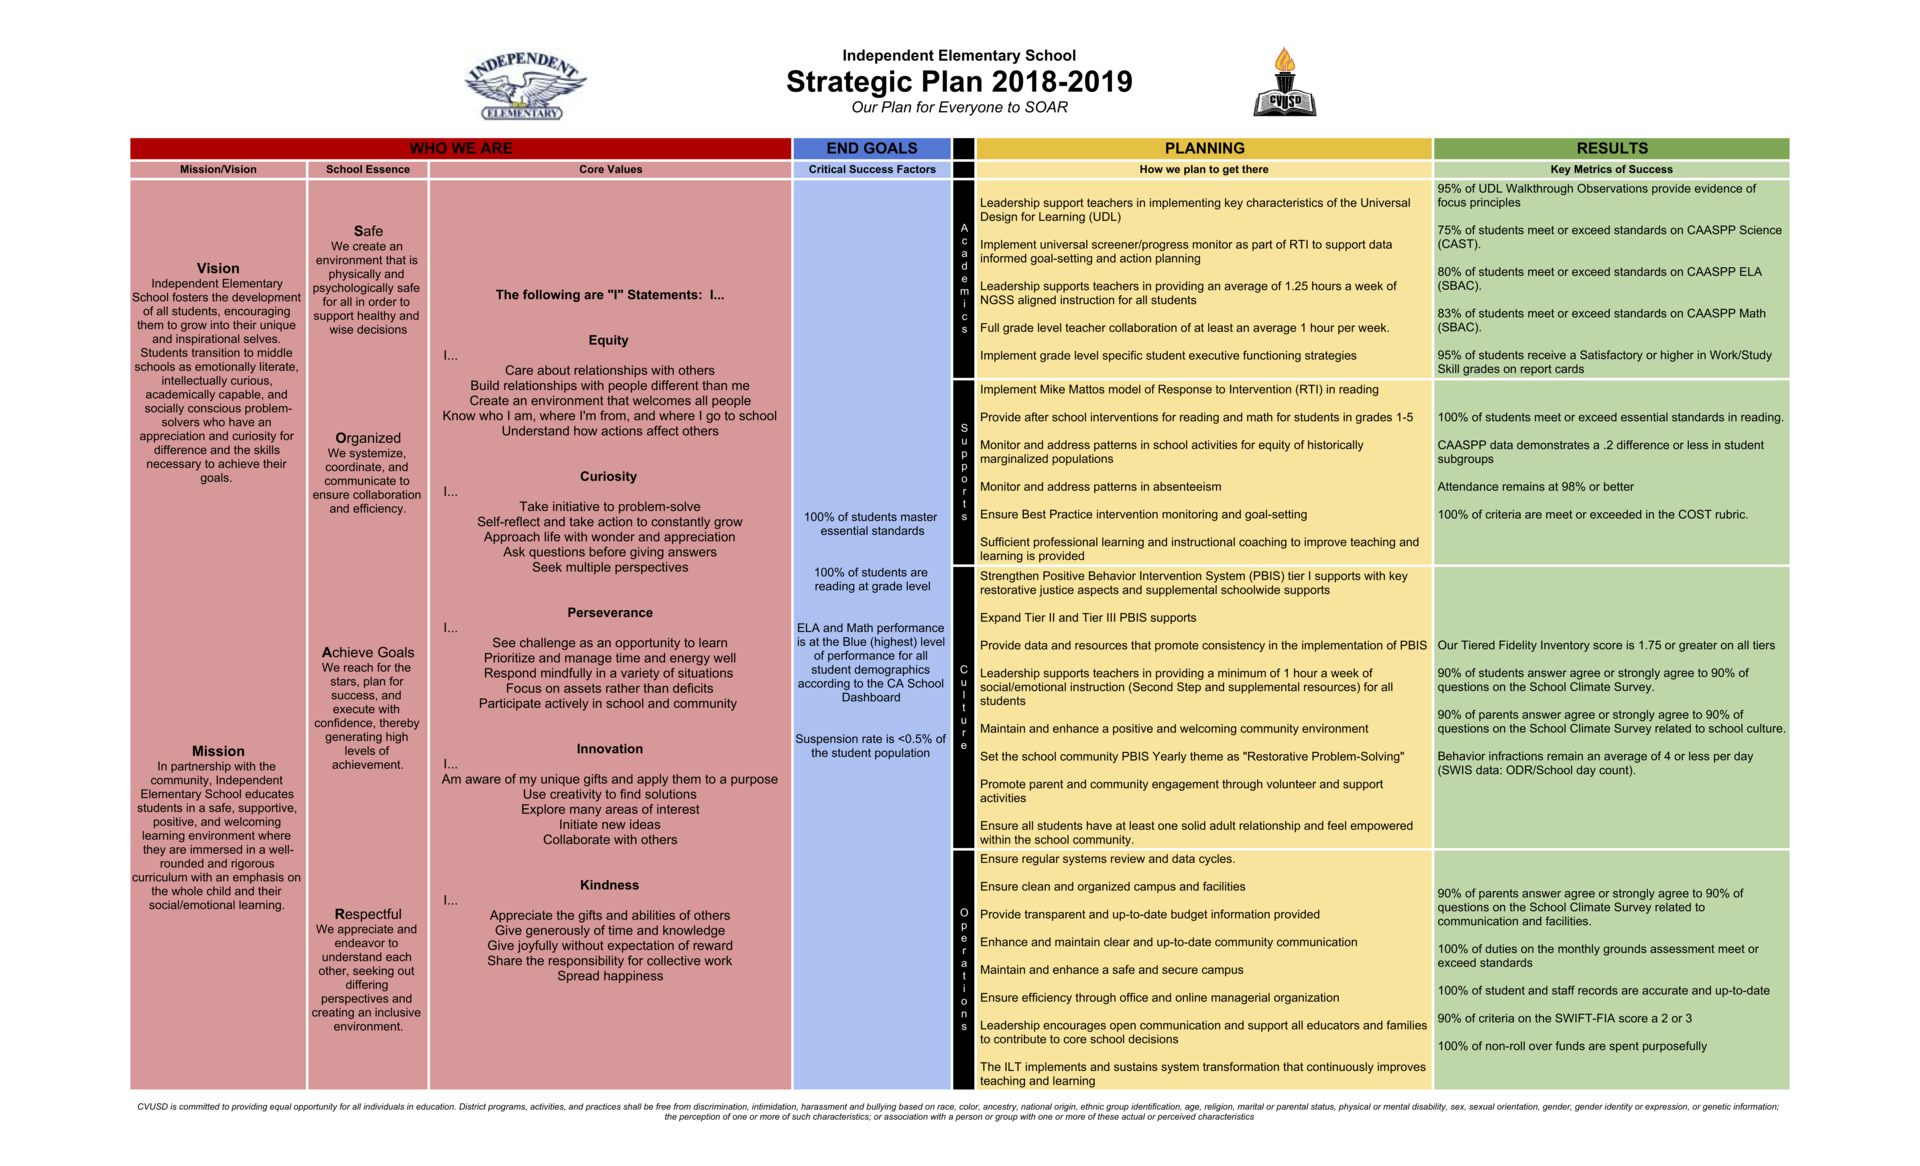 Image: 2018/19 Strategic Plan. Click on the link for the full document